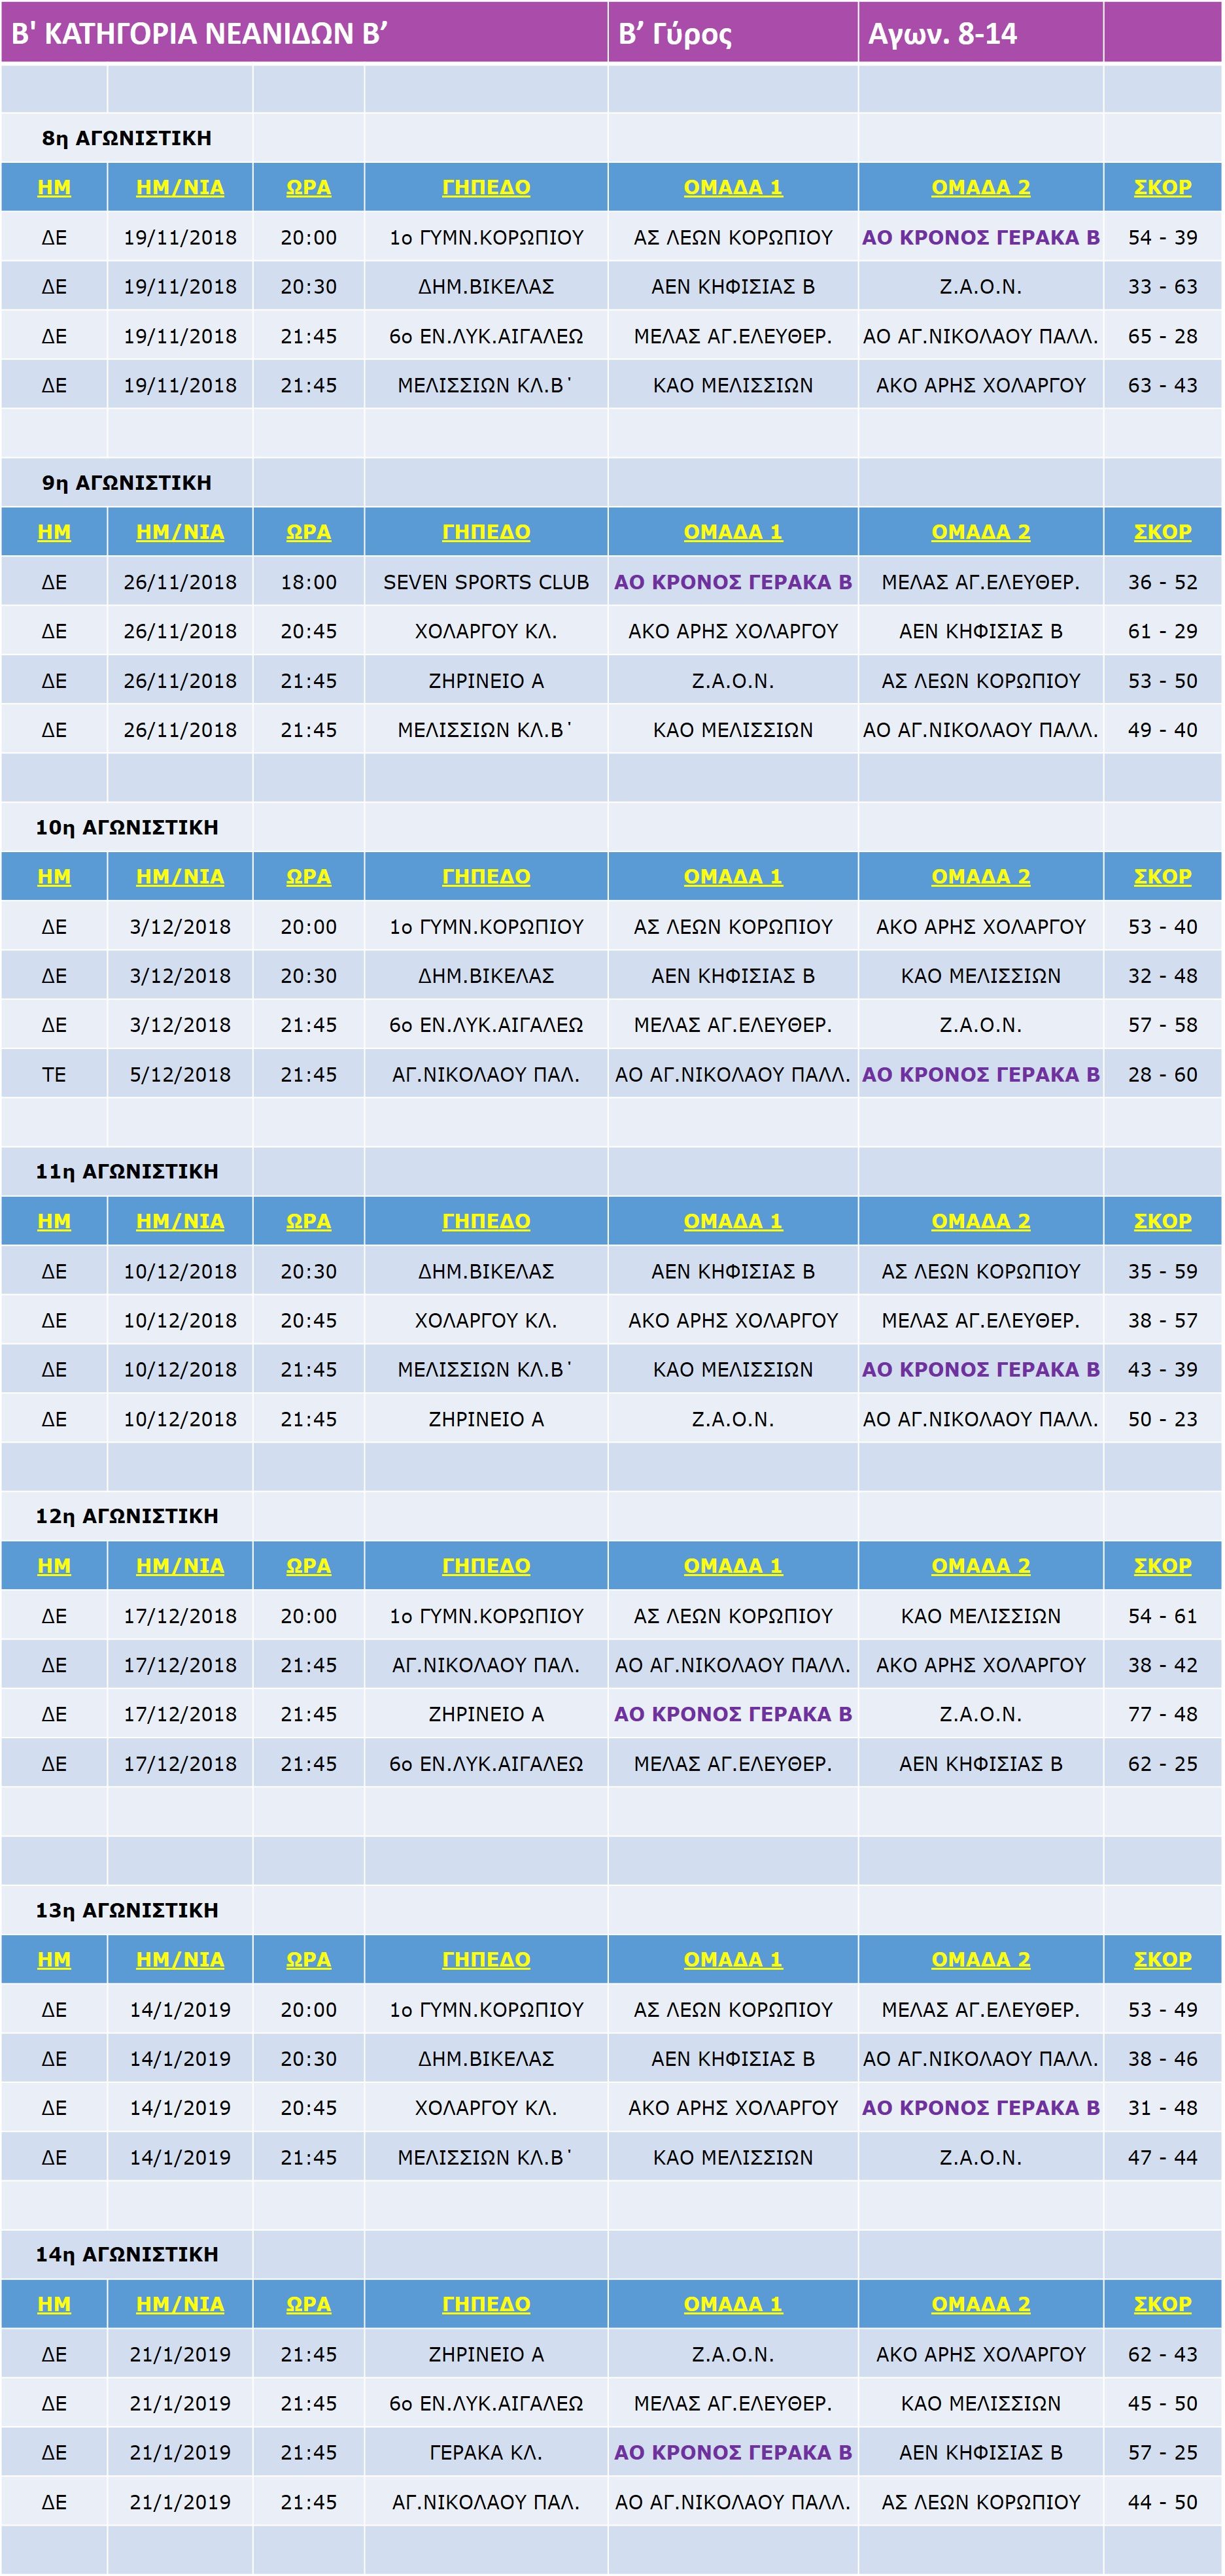 Neanides_Match_B_8-14-14